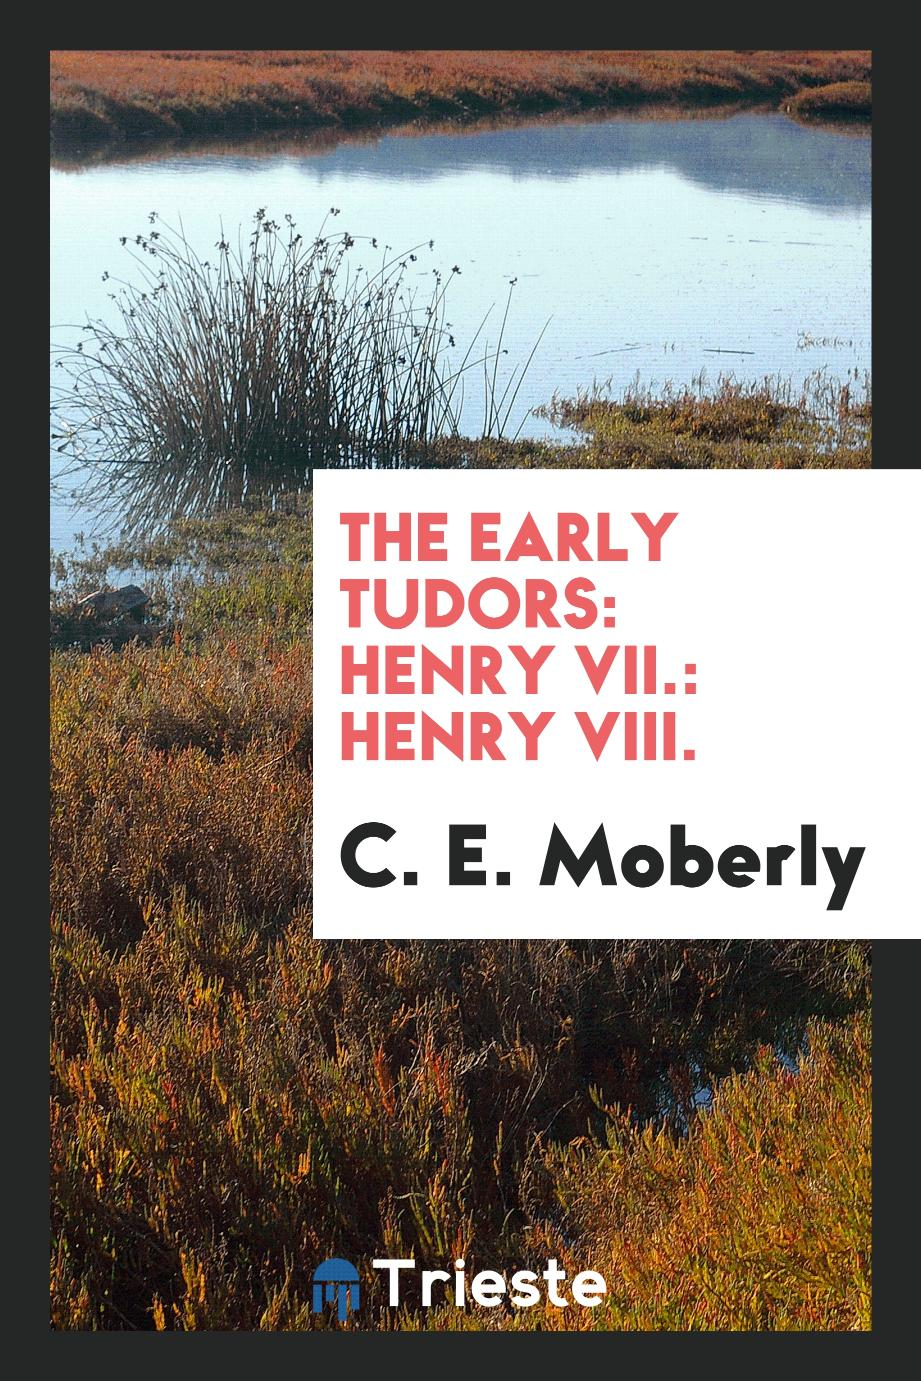 C. E. Moberly - The early Tudors: Henry VII.: Henry VIII.